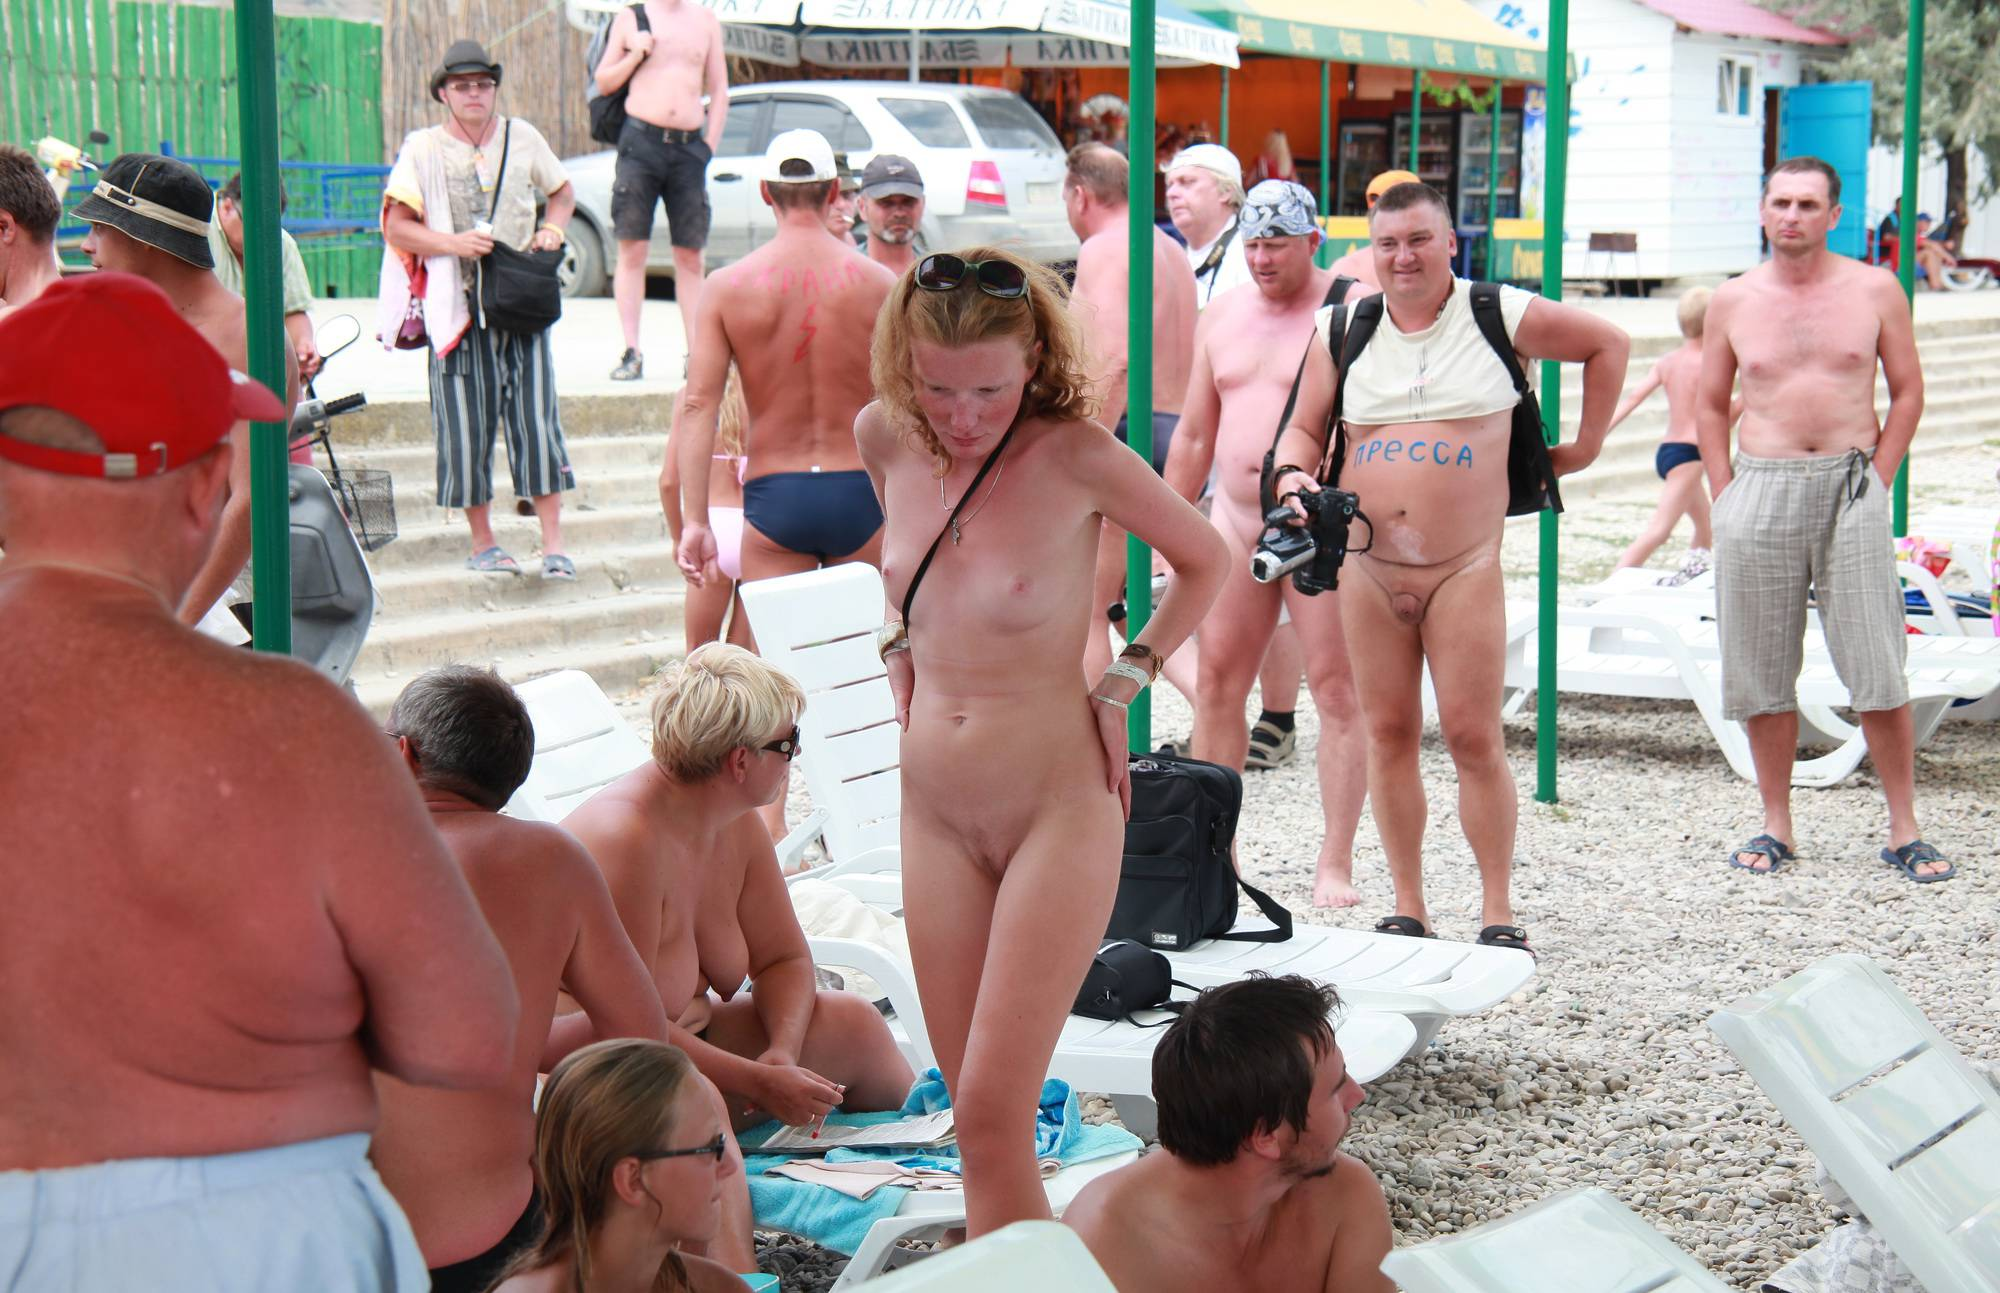 Nudist Pictures Neptune Paint Gatherings - 1